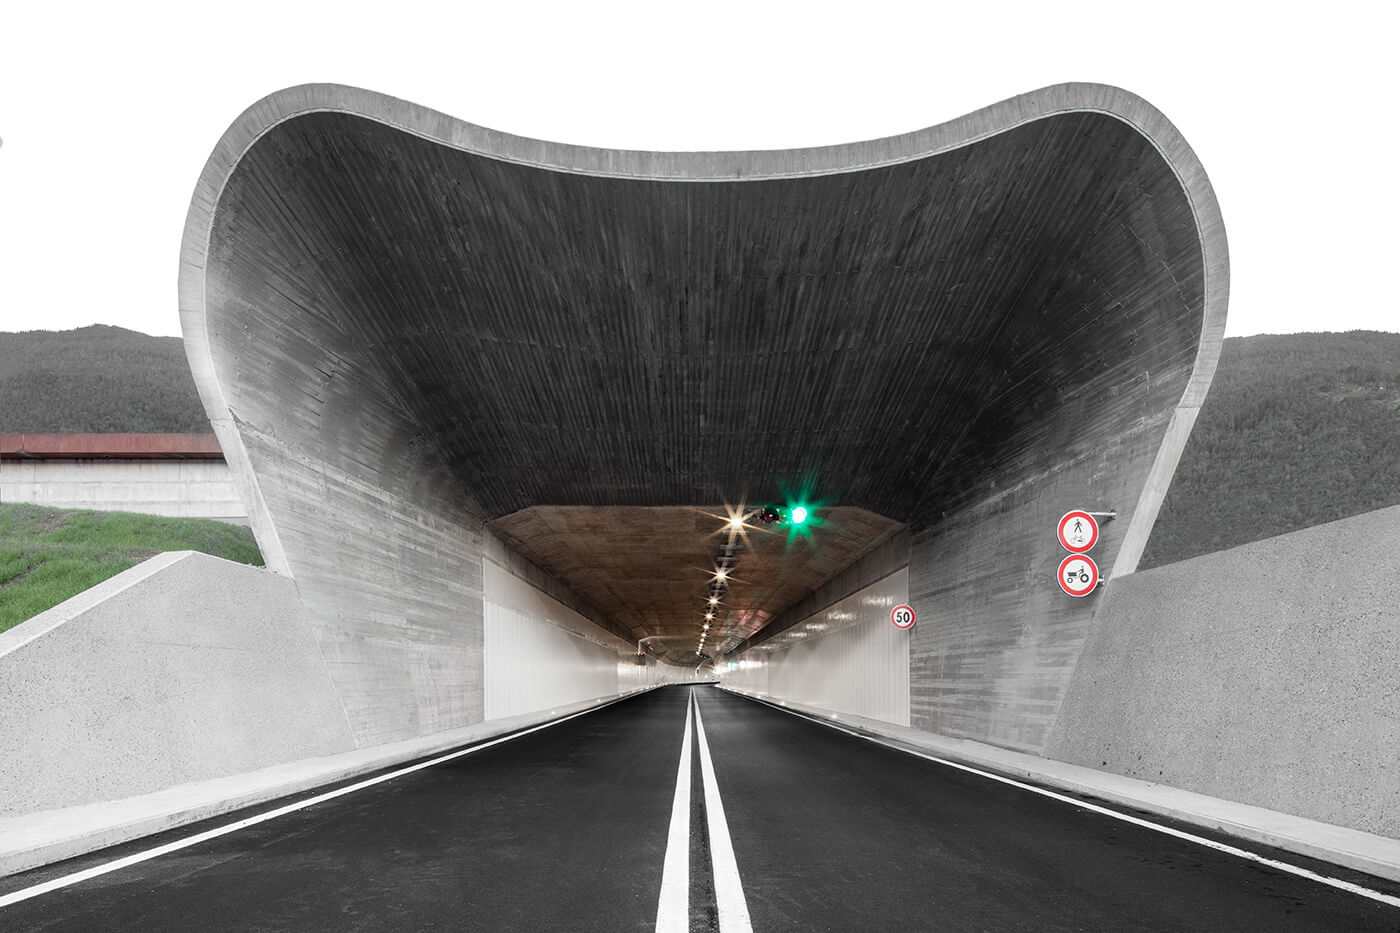 The sculptural Central Juncture Tunnel portal out of Bressanone city center | Bressanone-Varna Entry Portal Ring Road by Modus Architects | STIRworld